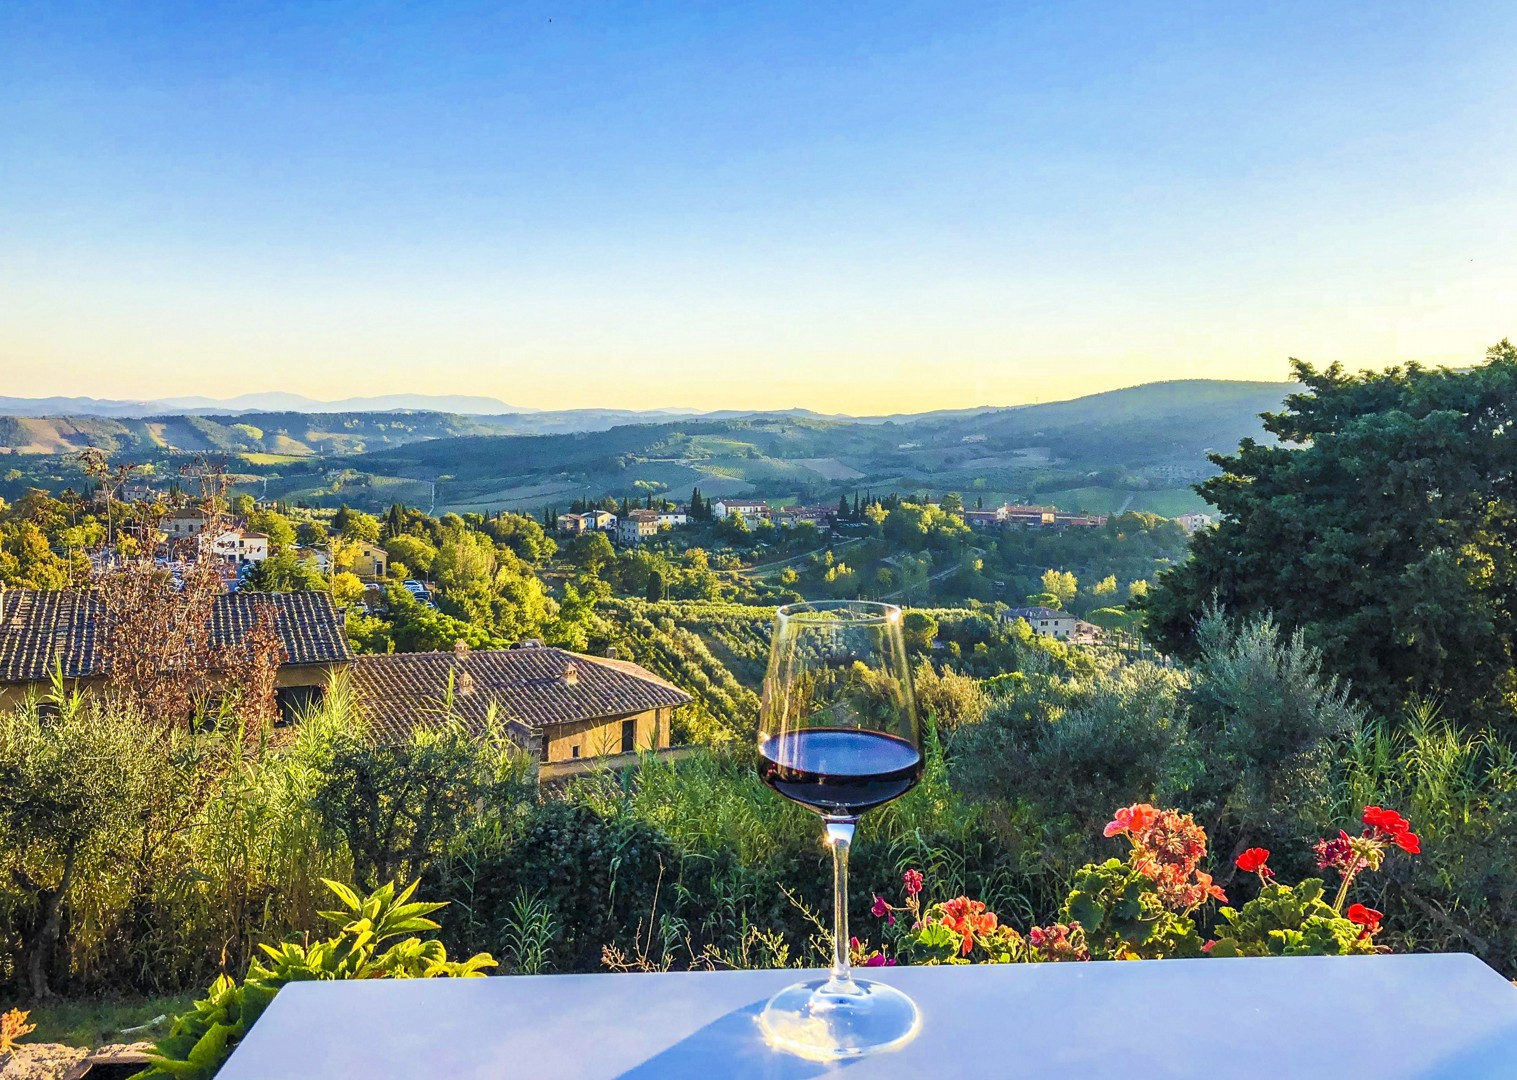 fine-italian-wines-chianti-montepulciano-montalcino-stunning-scenery-cycling-holiday.jpg - Italy - A Taste of Tuscany - Italia Leisure and Family Cycling